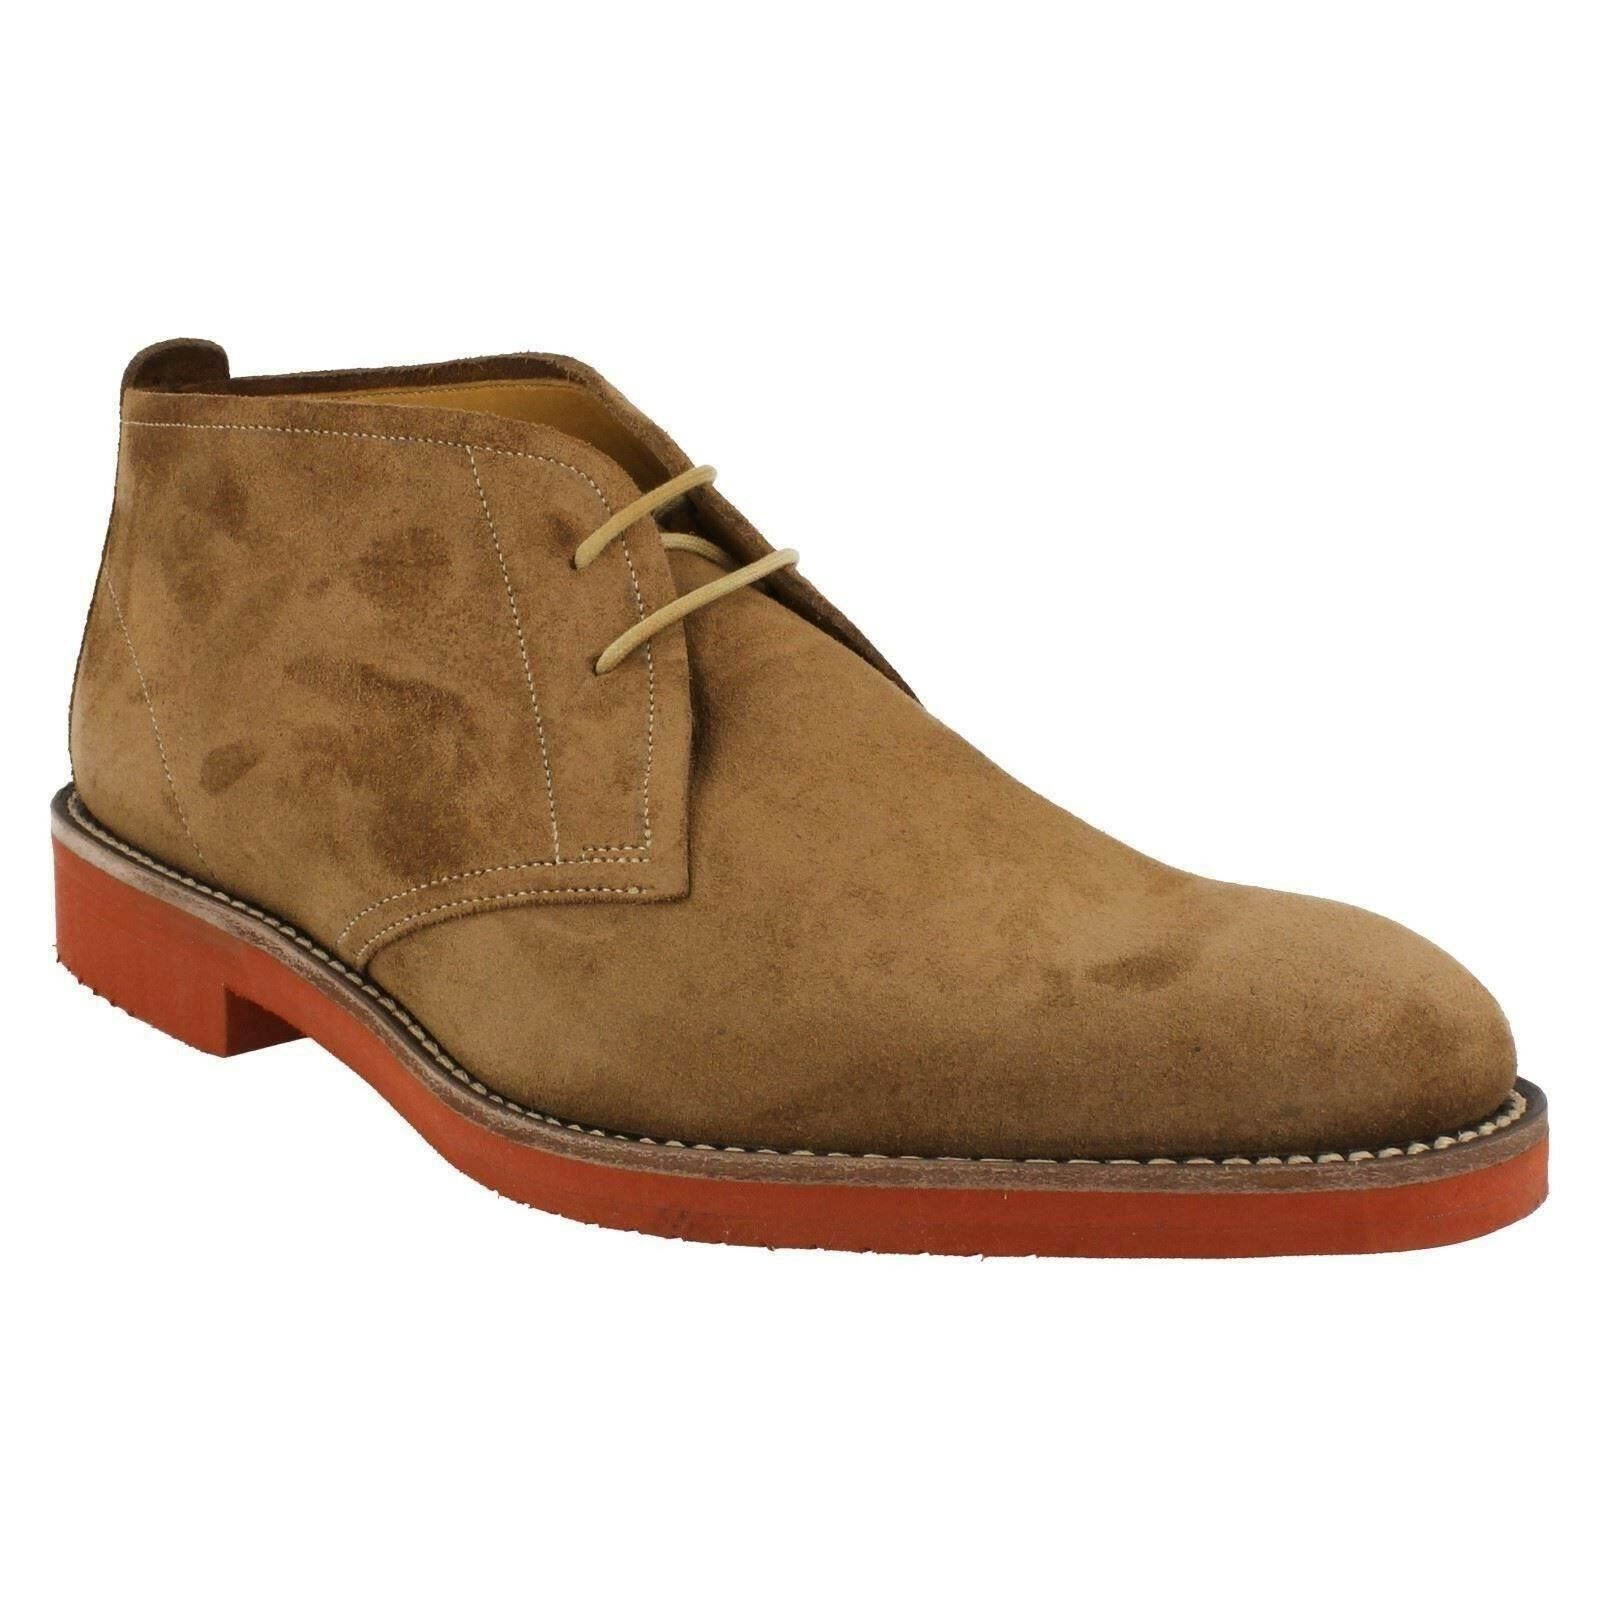 MENS LOAKE SHOES LACE UP BROWN SUEDE CASUAL EVERYDAY EVERYDAY EVERYDAY DESERT ANKLE BOOTS LENNOX a9f4a1